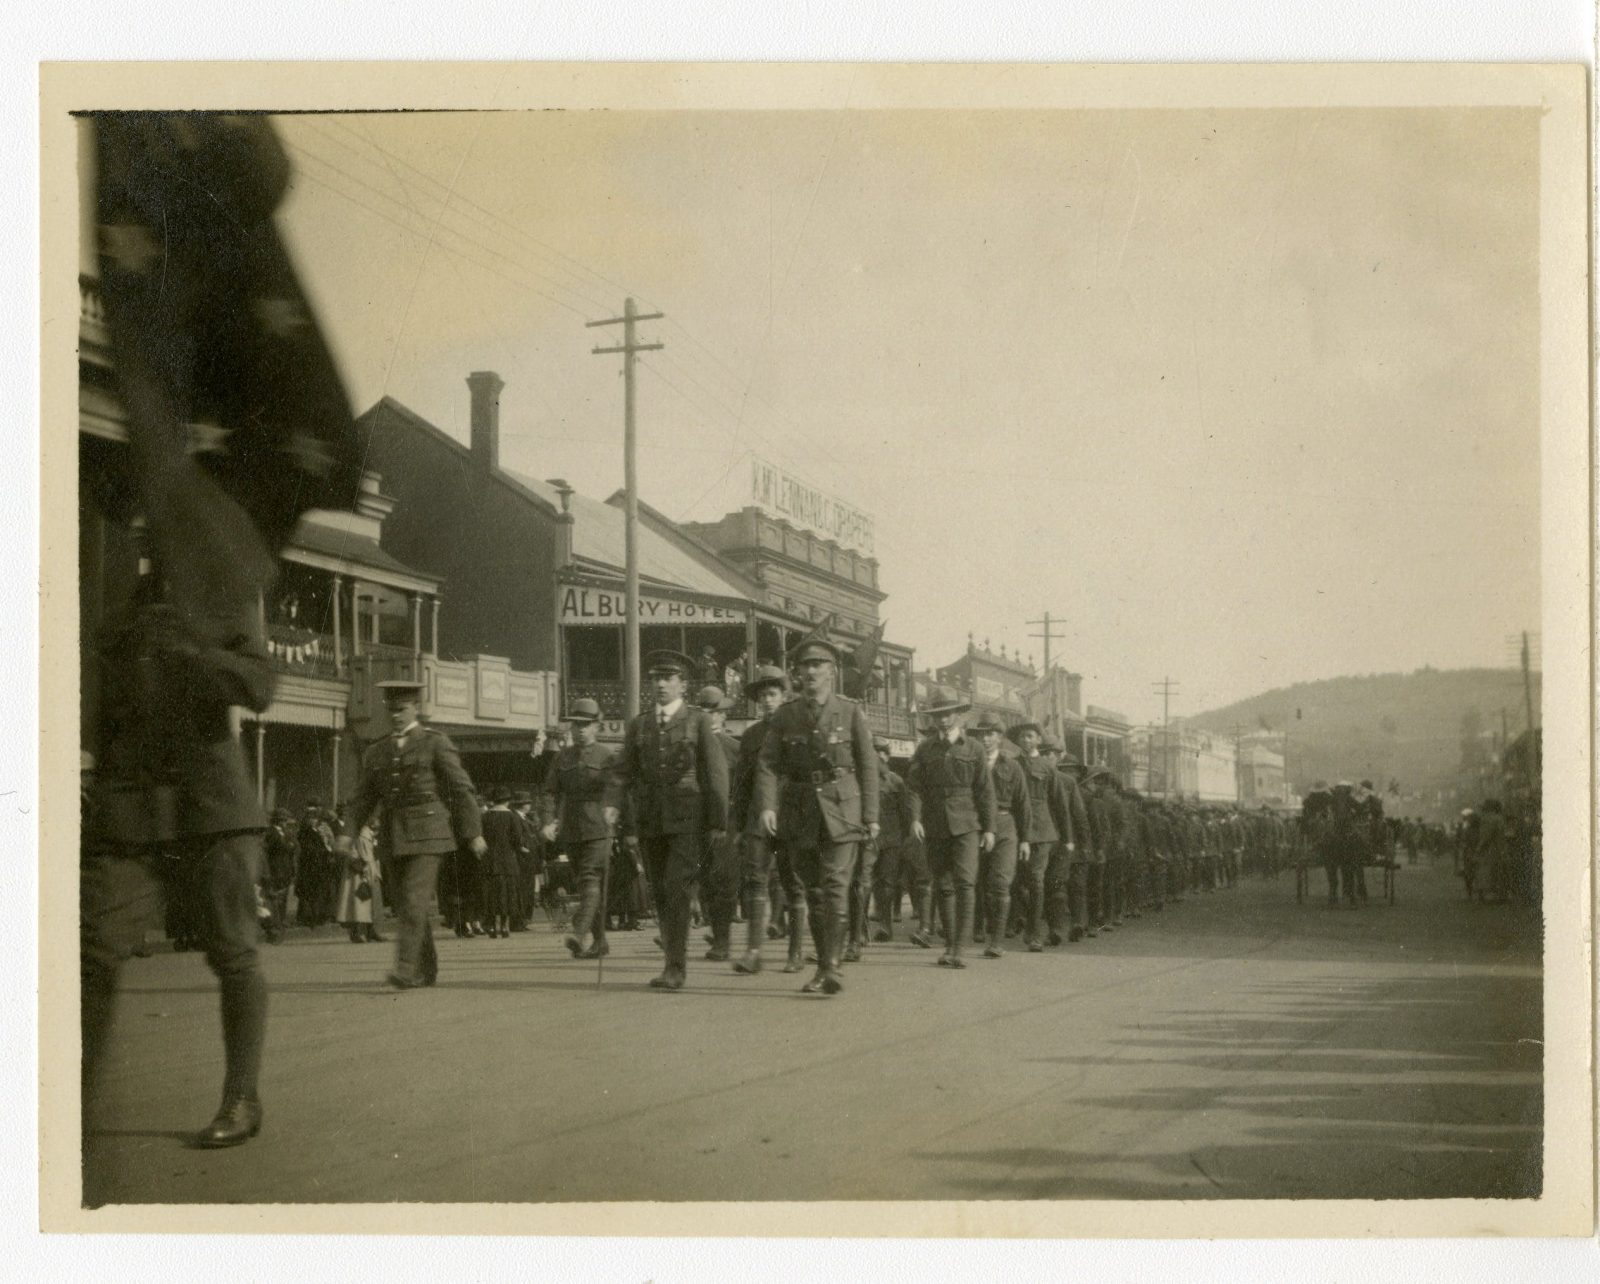 Troops marching down Dean Street Albury NSW during WW1